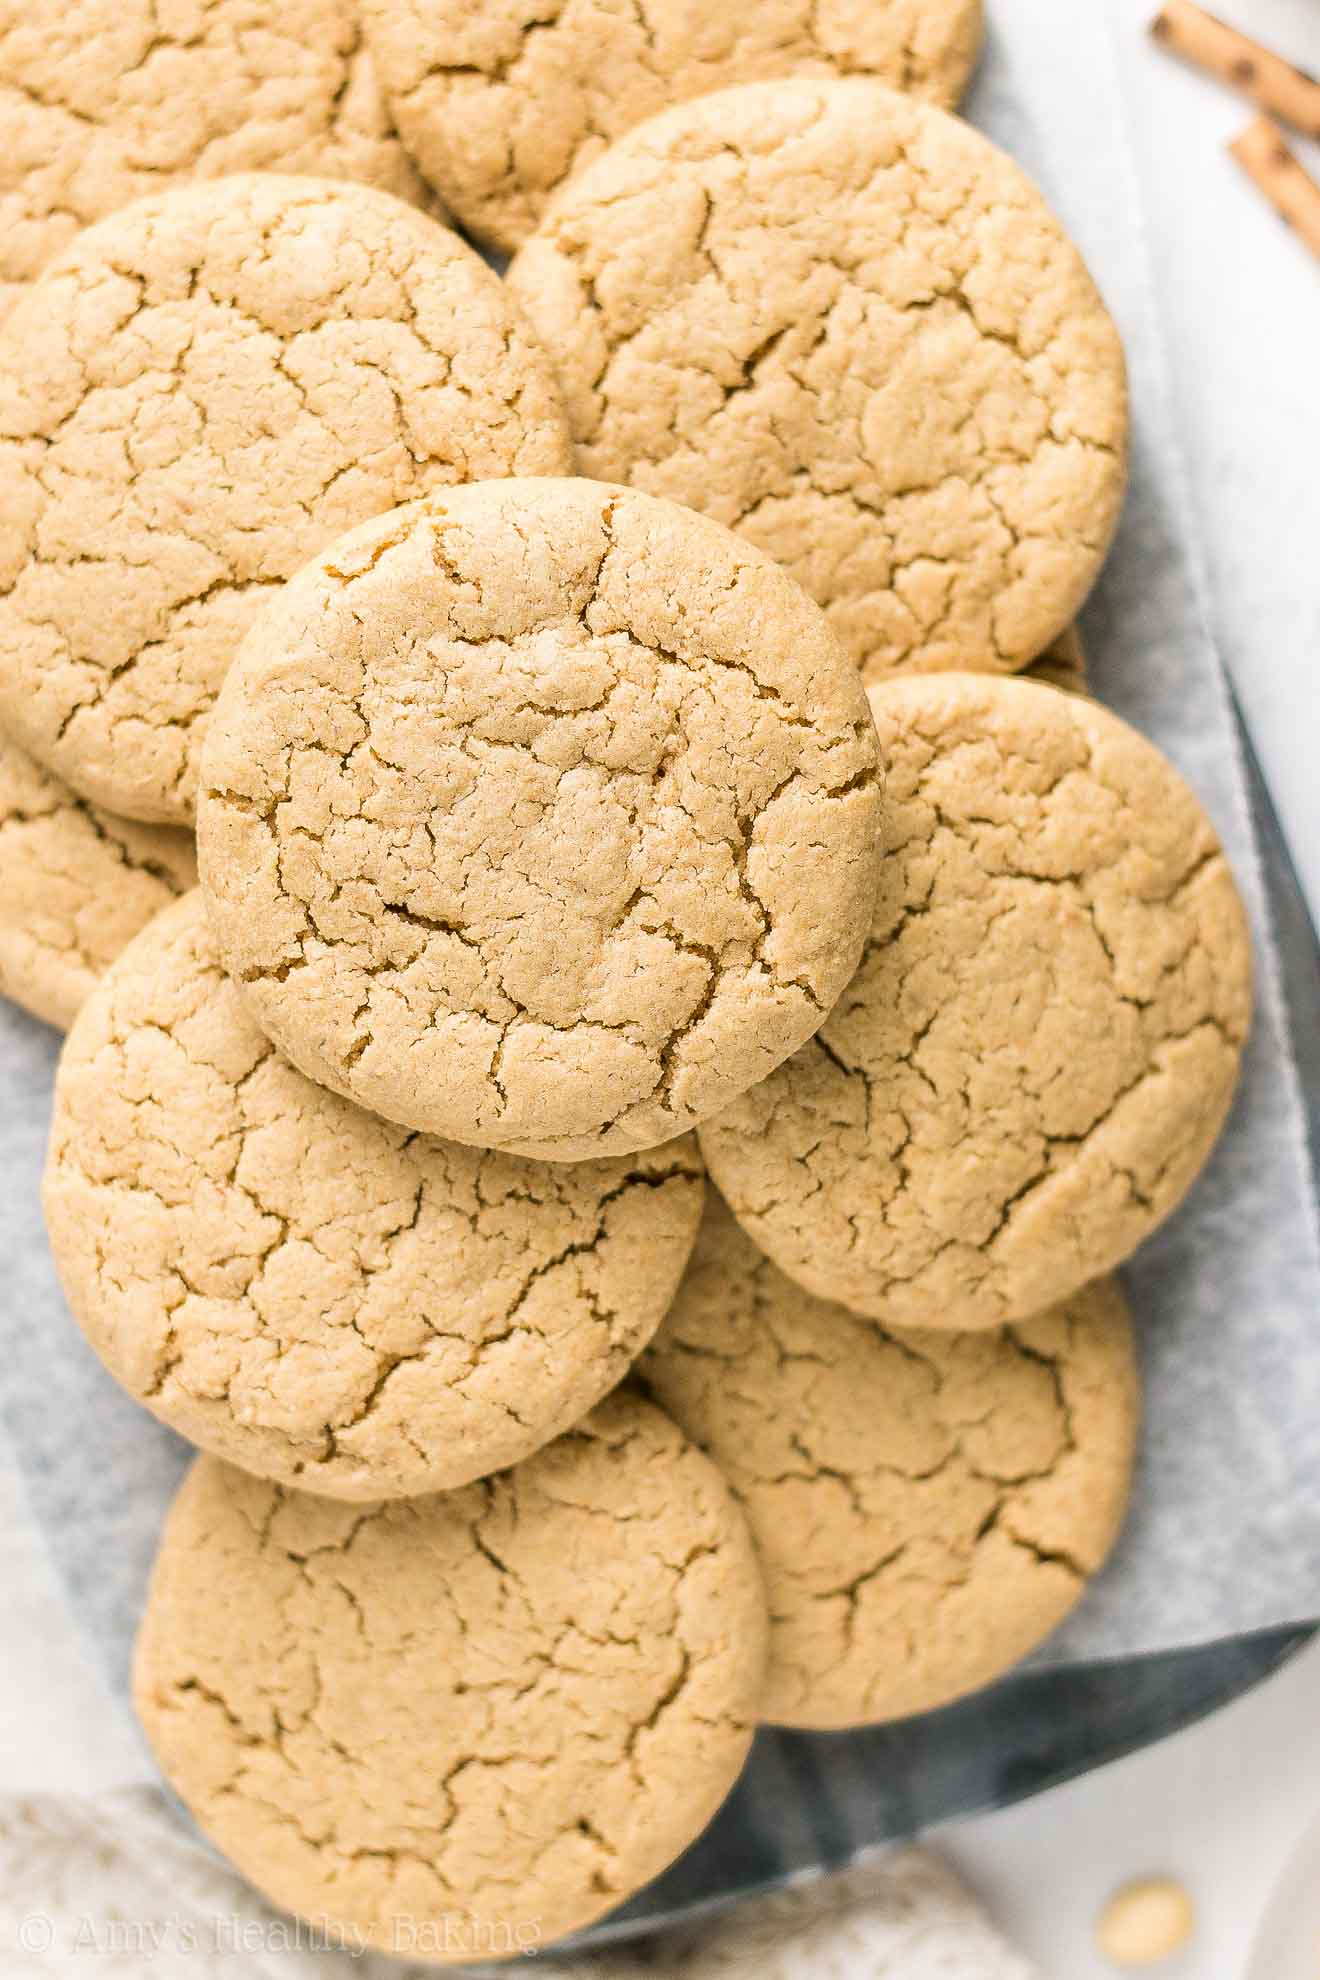 Easy Healthy Gluten-Free Flourless Peanut Butter Cookies with no eggs